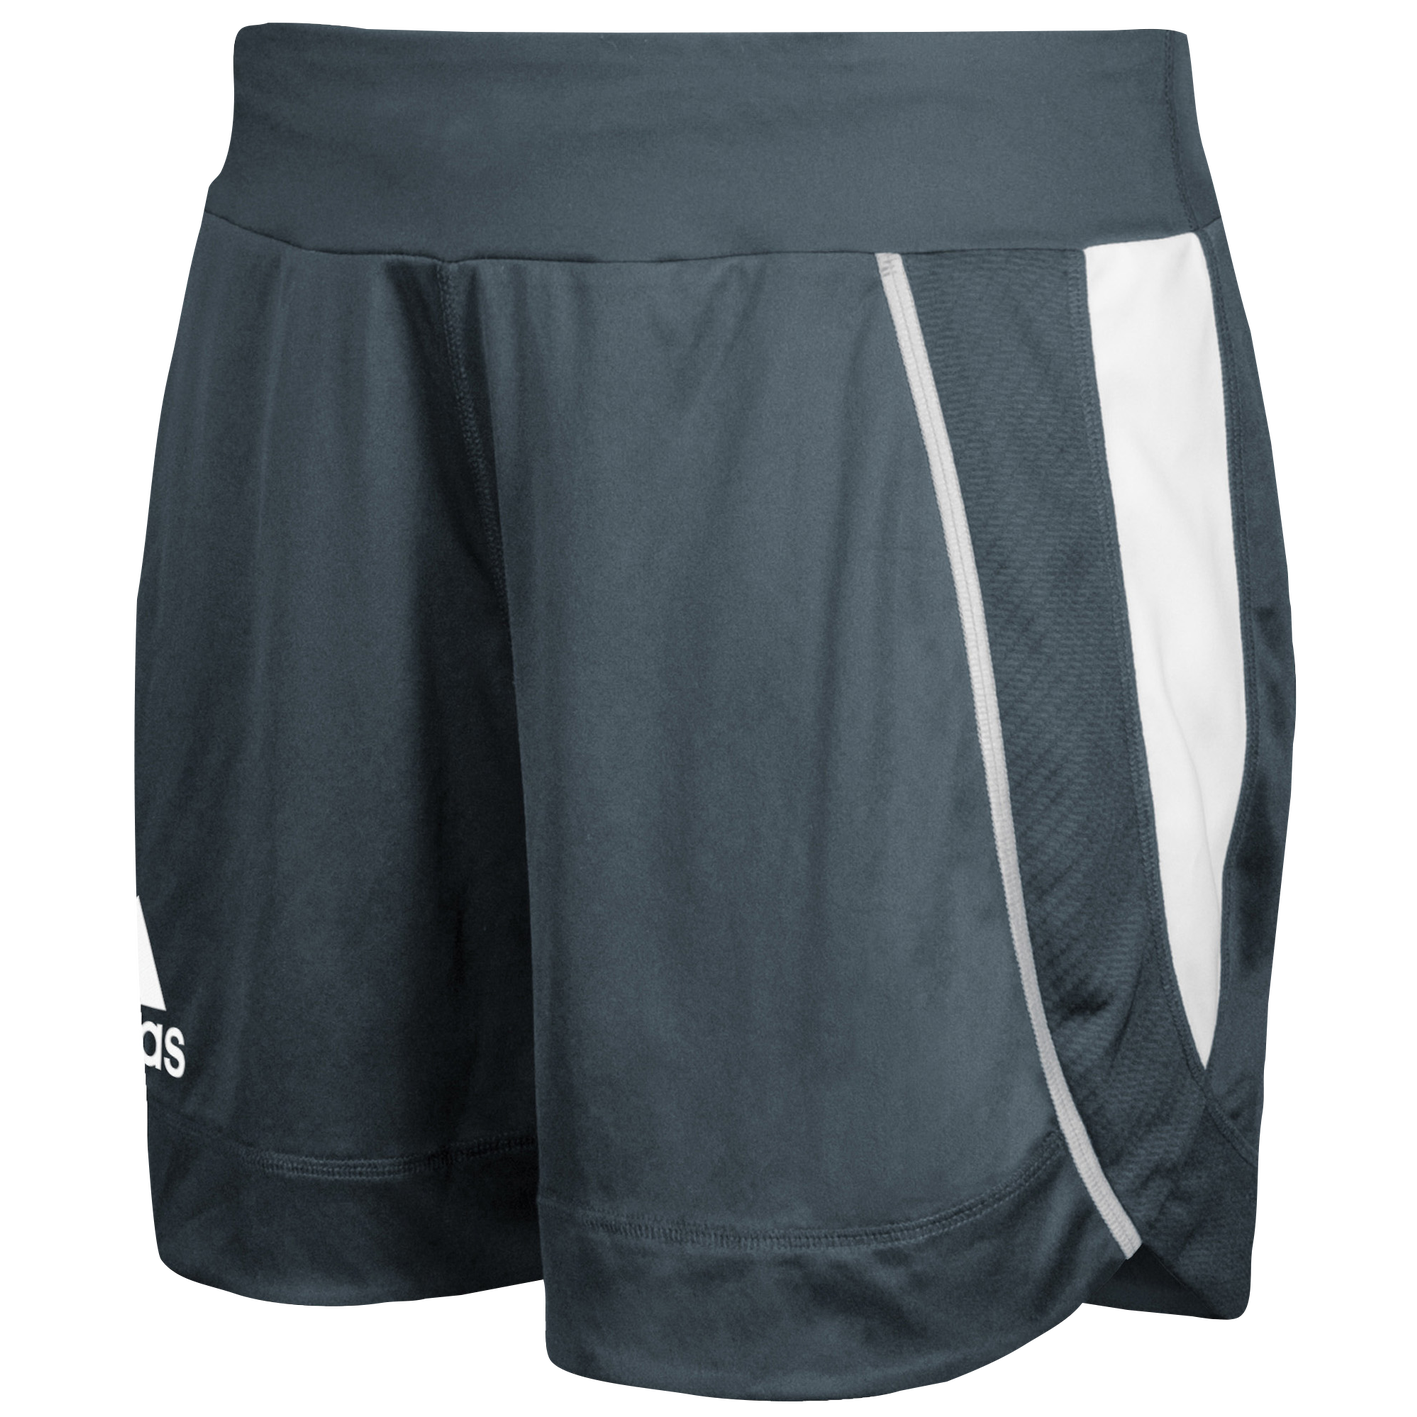 adidas Team Utility Shorts - Women s - For All Sports - Clothing ... 2d9d814500